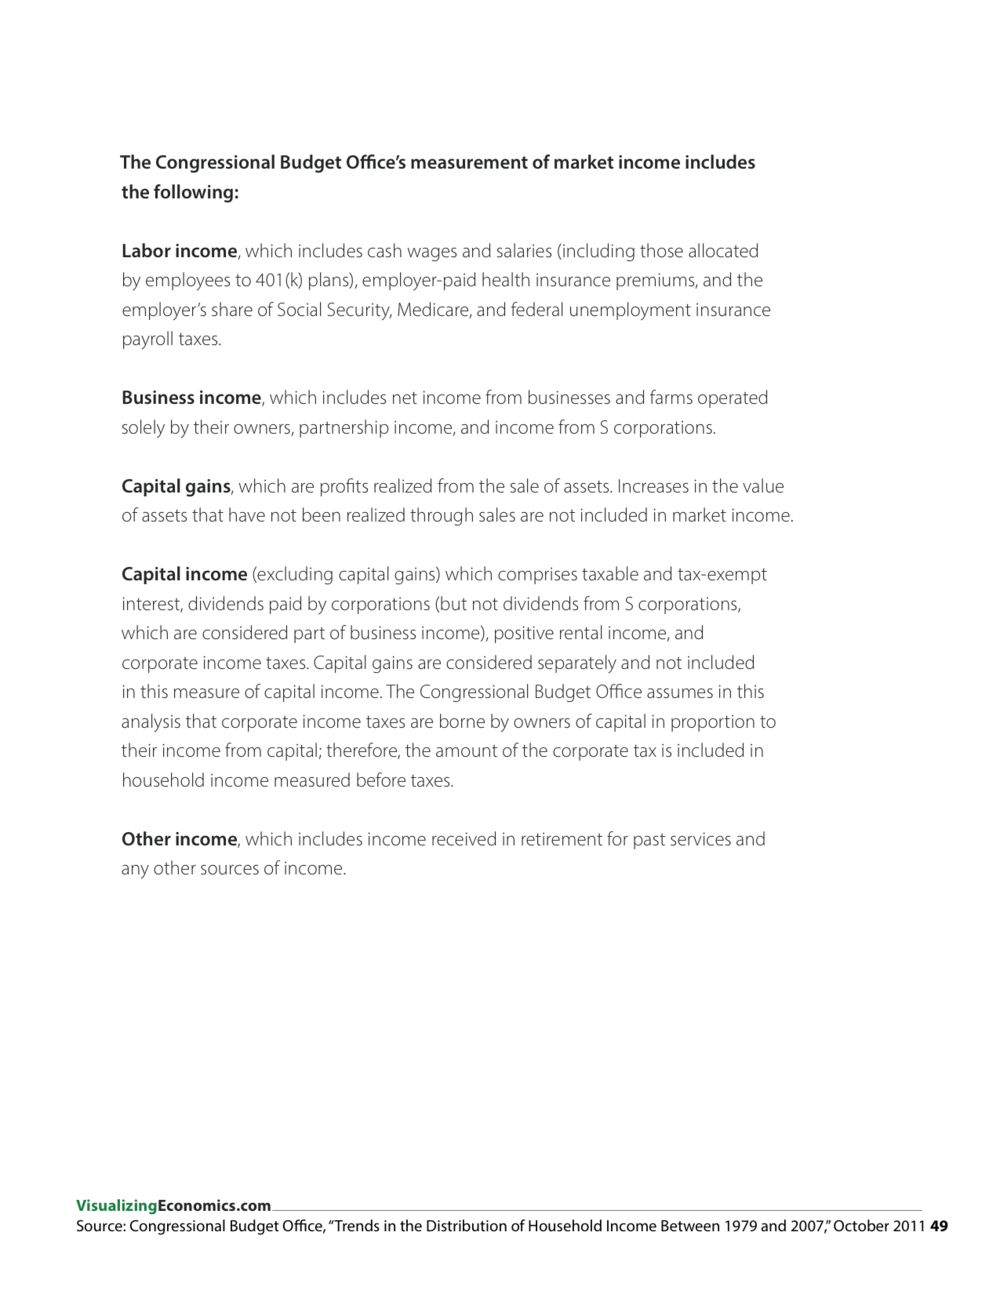 IncomeGuide_2013_Jan17_RGB_page 49_49.png